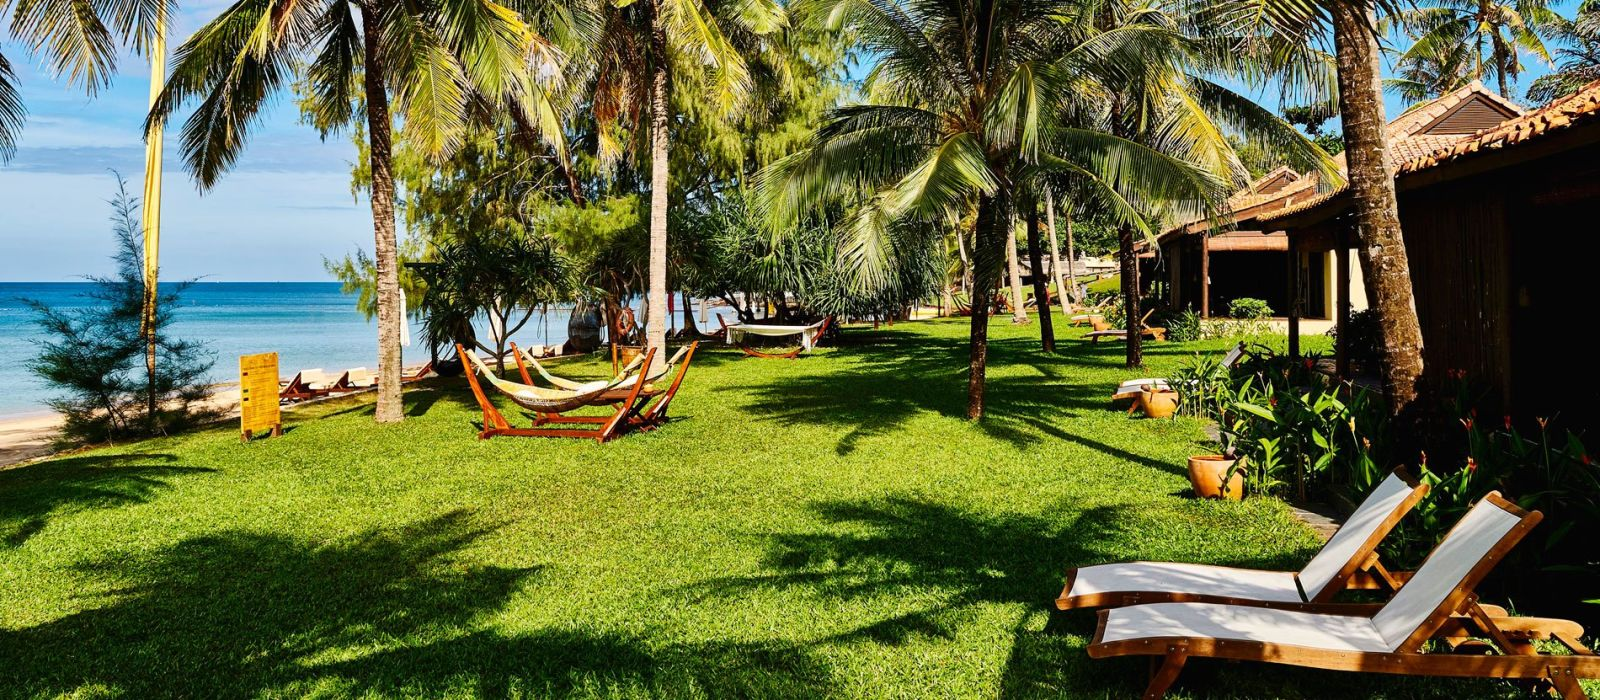 Chen Sea Resort And Spa Hotel In Phu Quoc Island